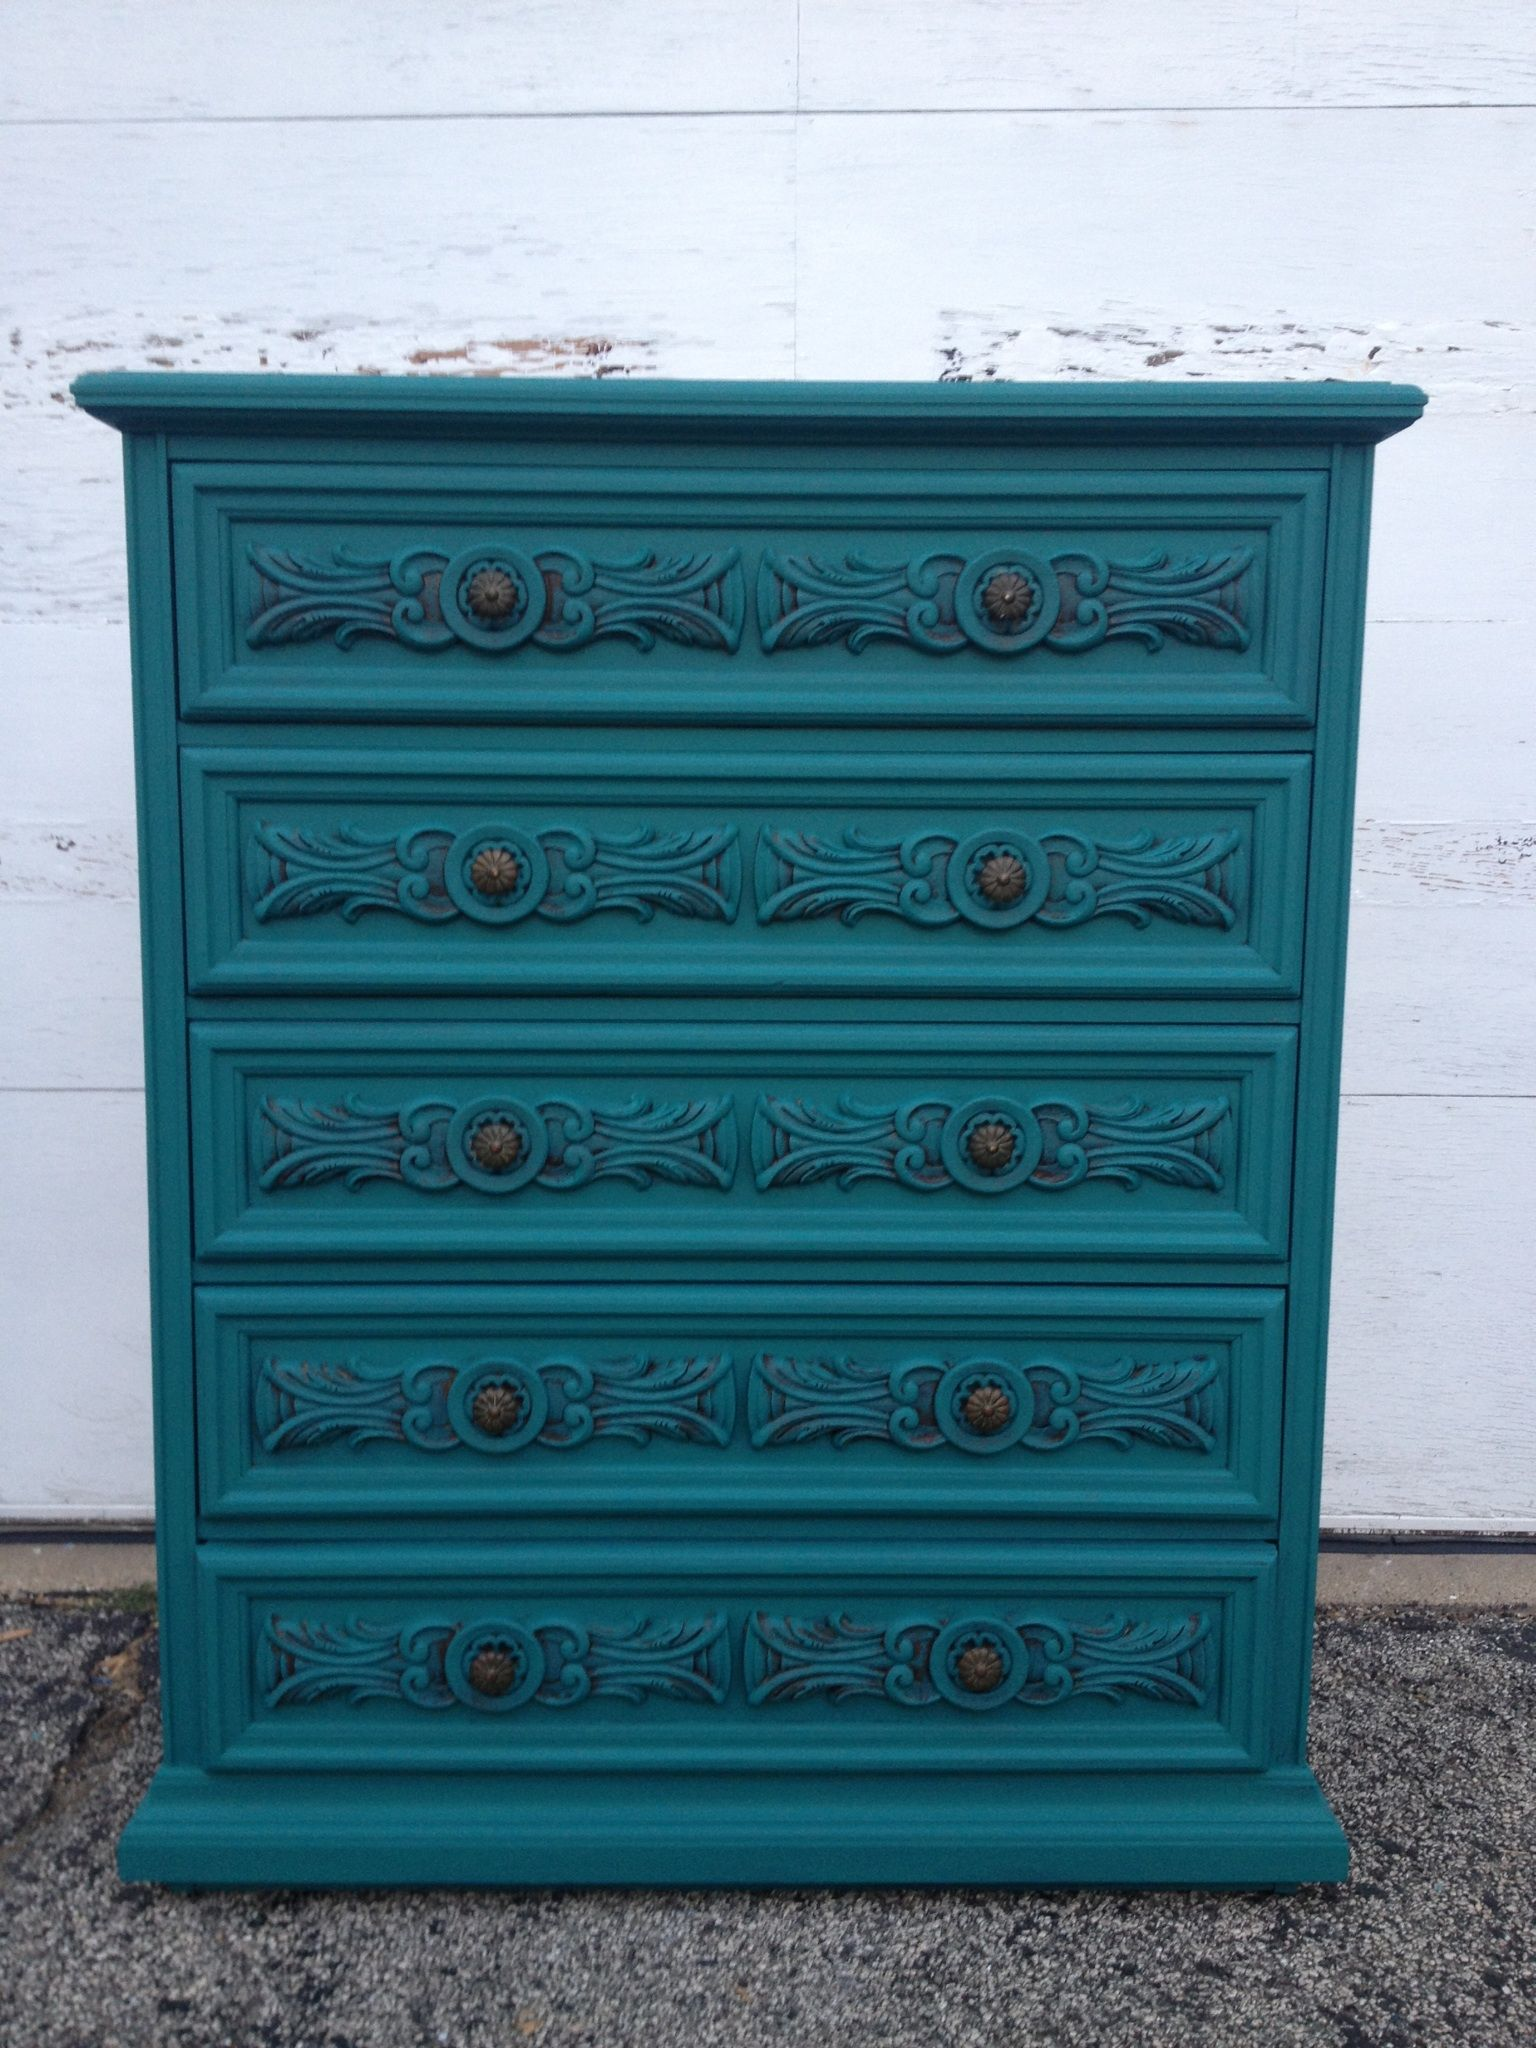 Teal Painted Highboy Dresser By Twice Loved Furniture Creations Unique Dresser Teal Paint